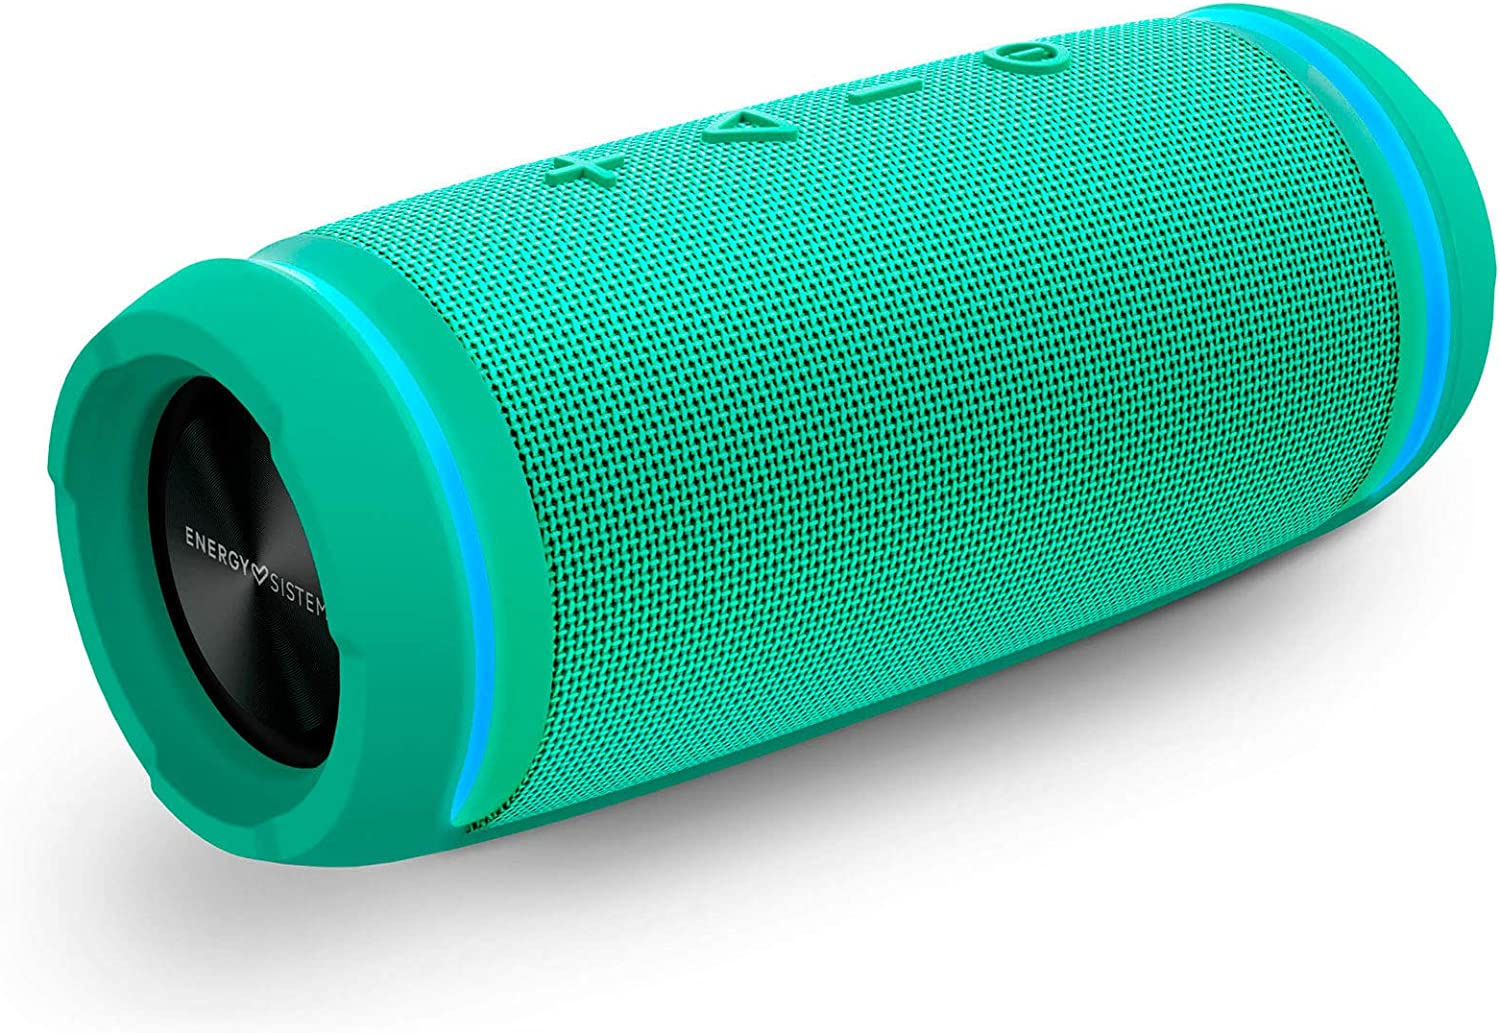 Energy Urban Box 4 BassTube Jade (12 W, 360 Sound Experience, TWS, Water-Resistant)